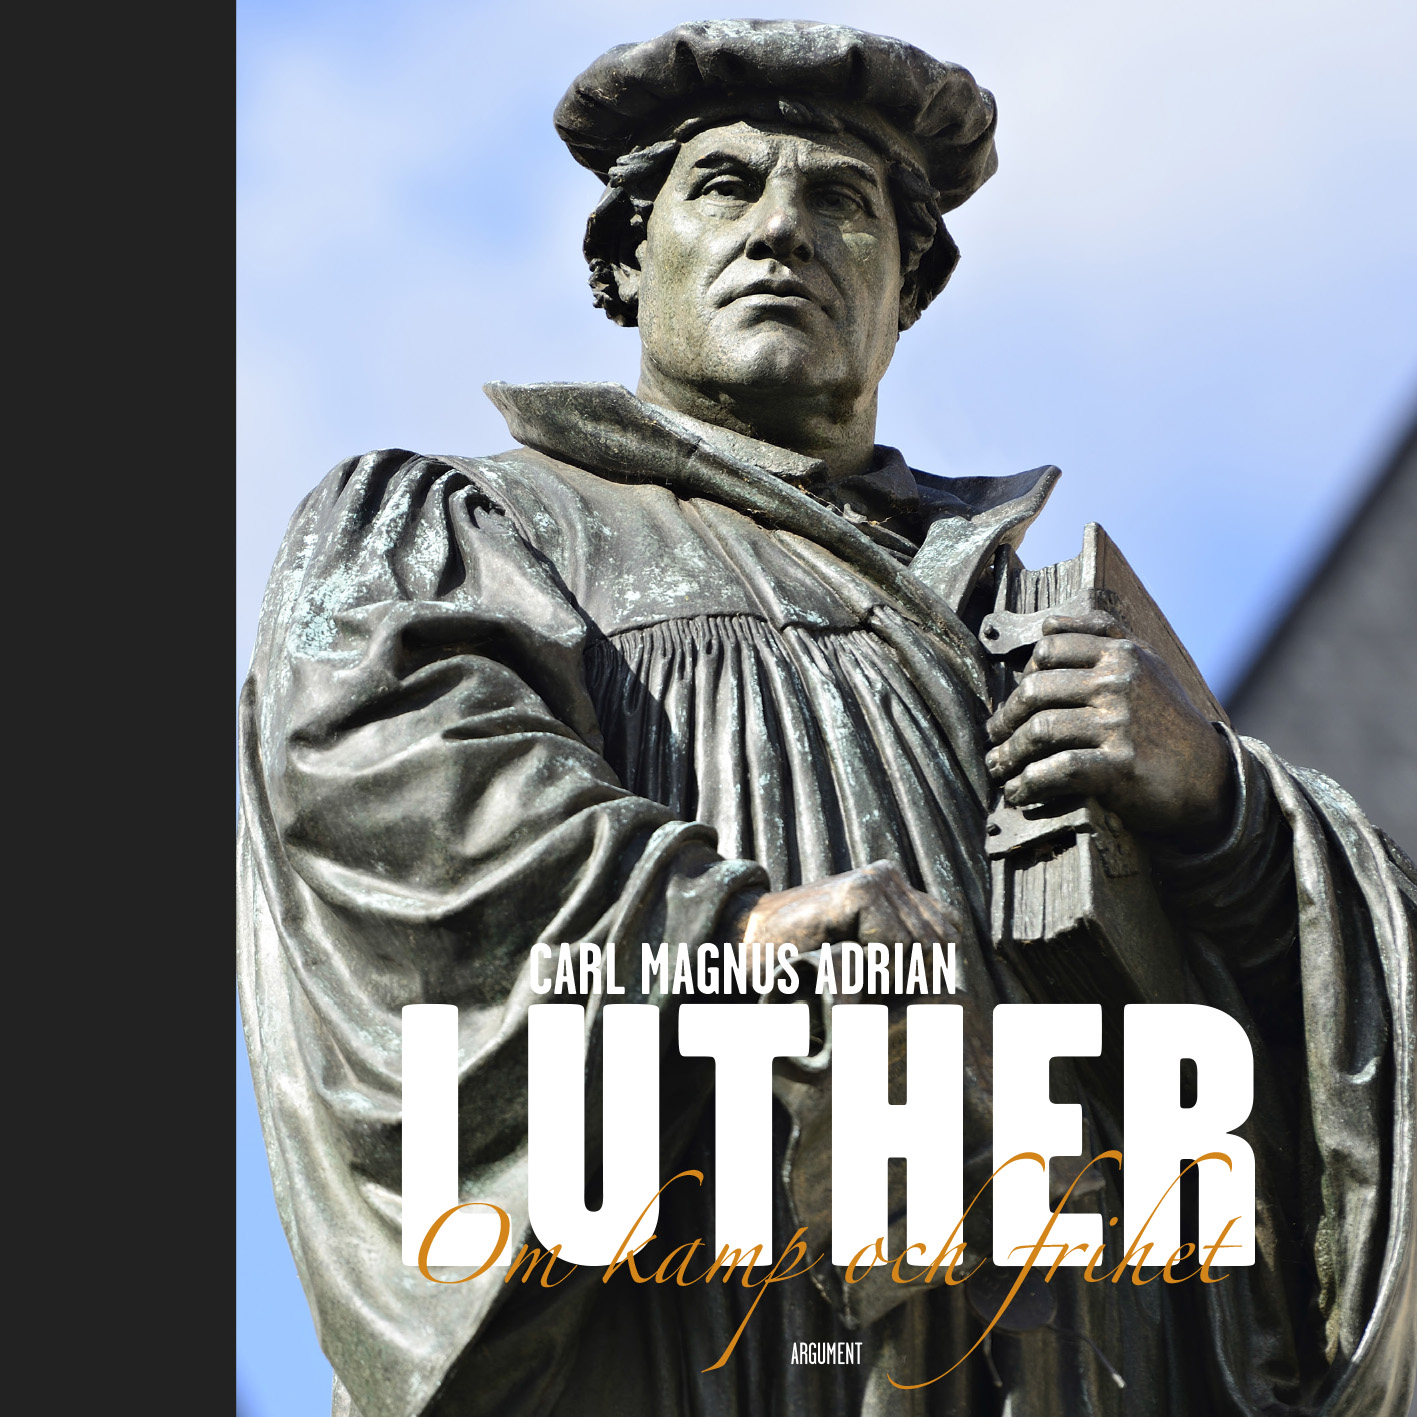 Image for Luther : om kamp och frihet from Suomalainen.com